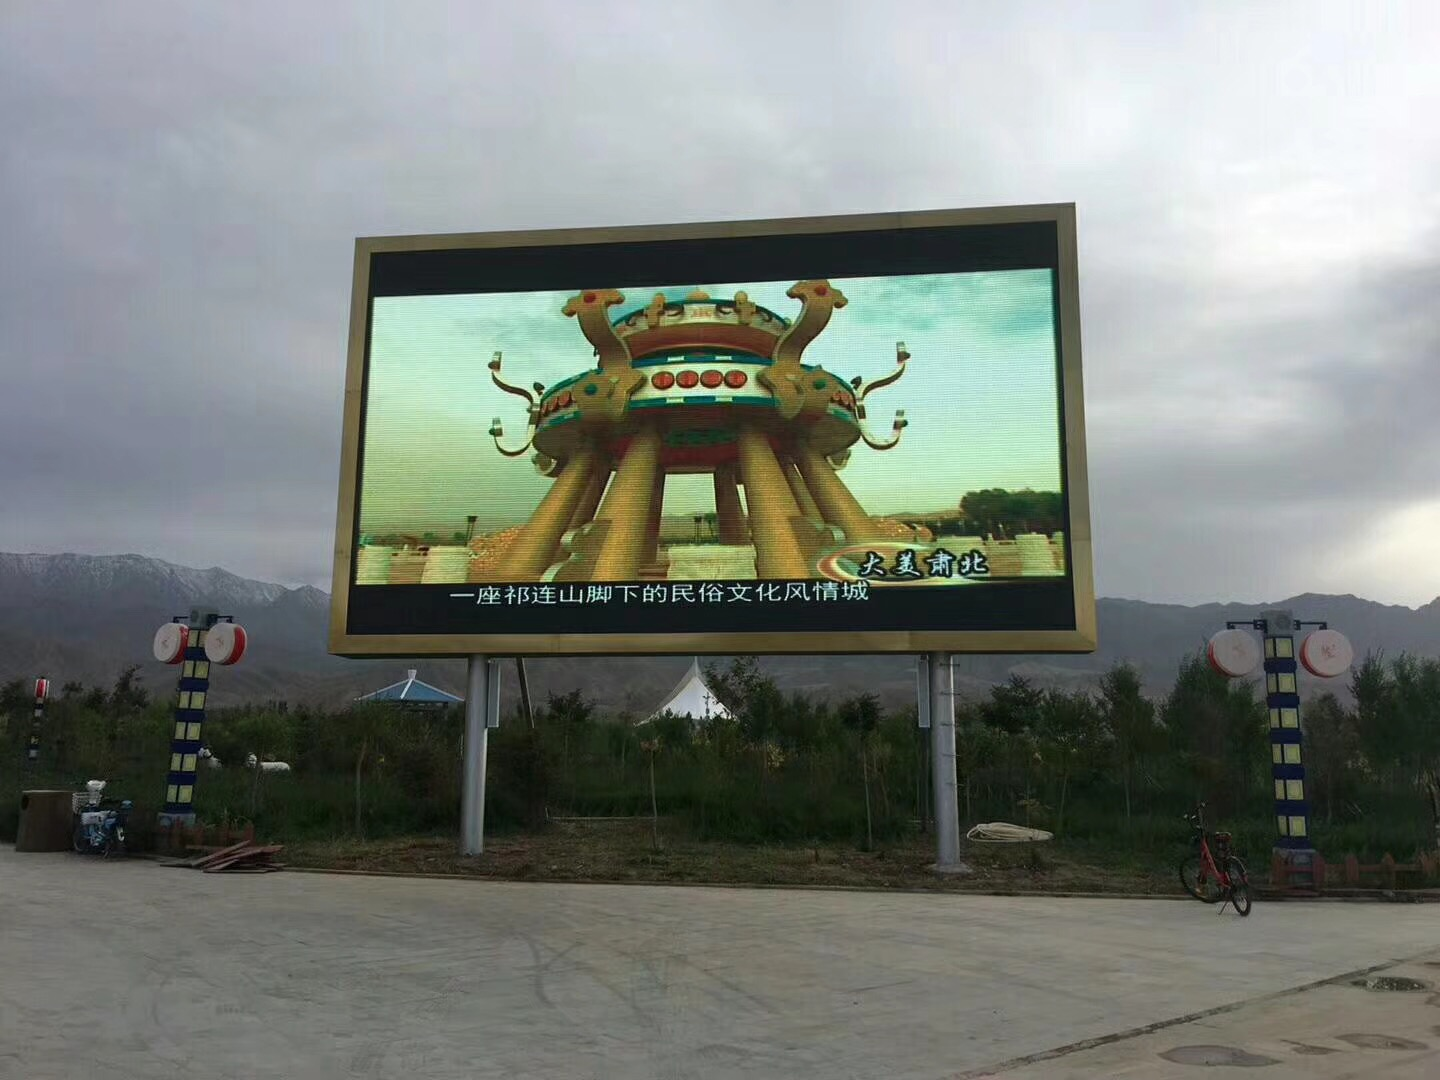 Advertising billboard led